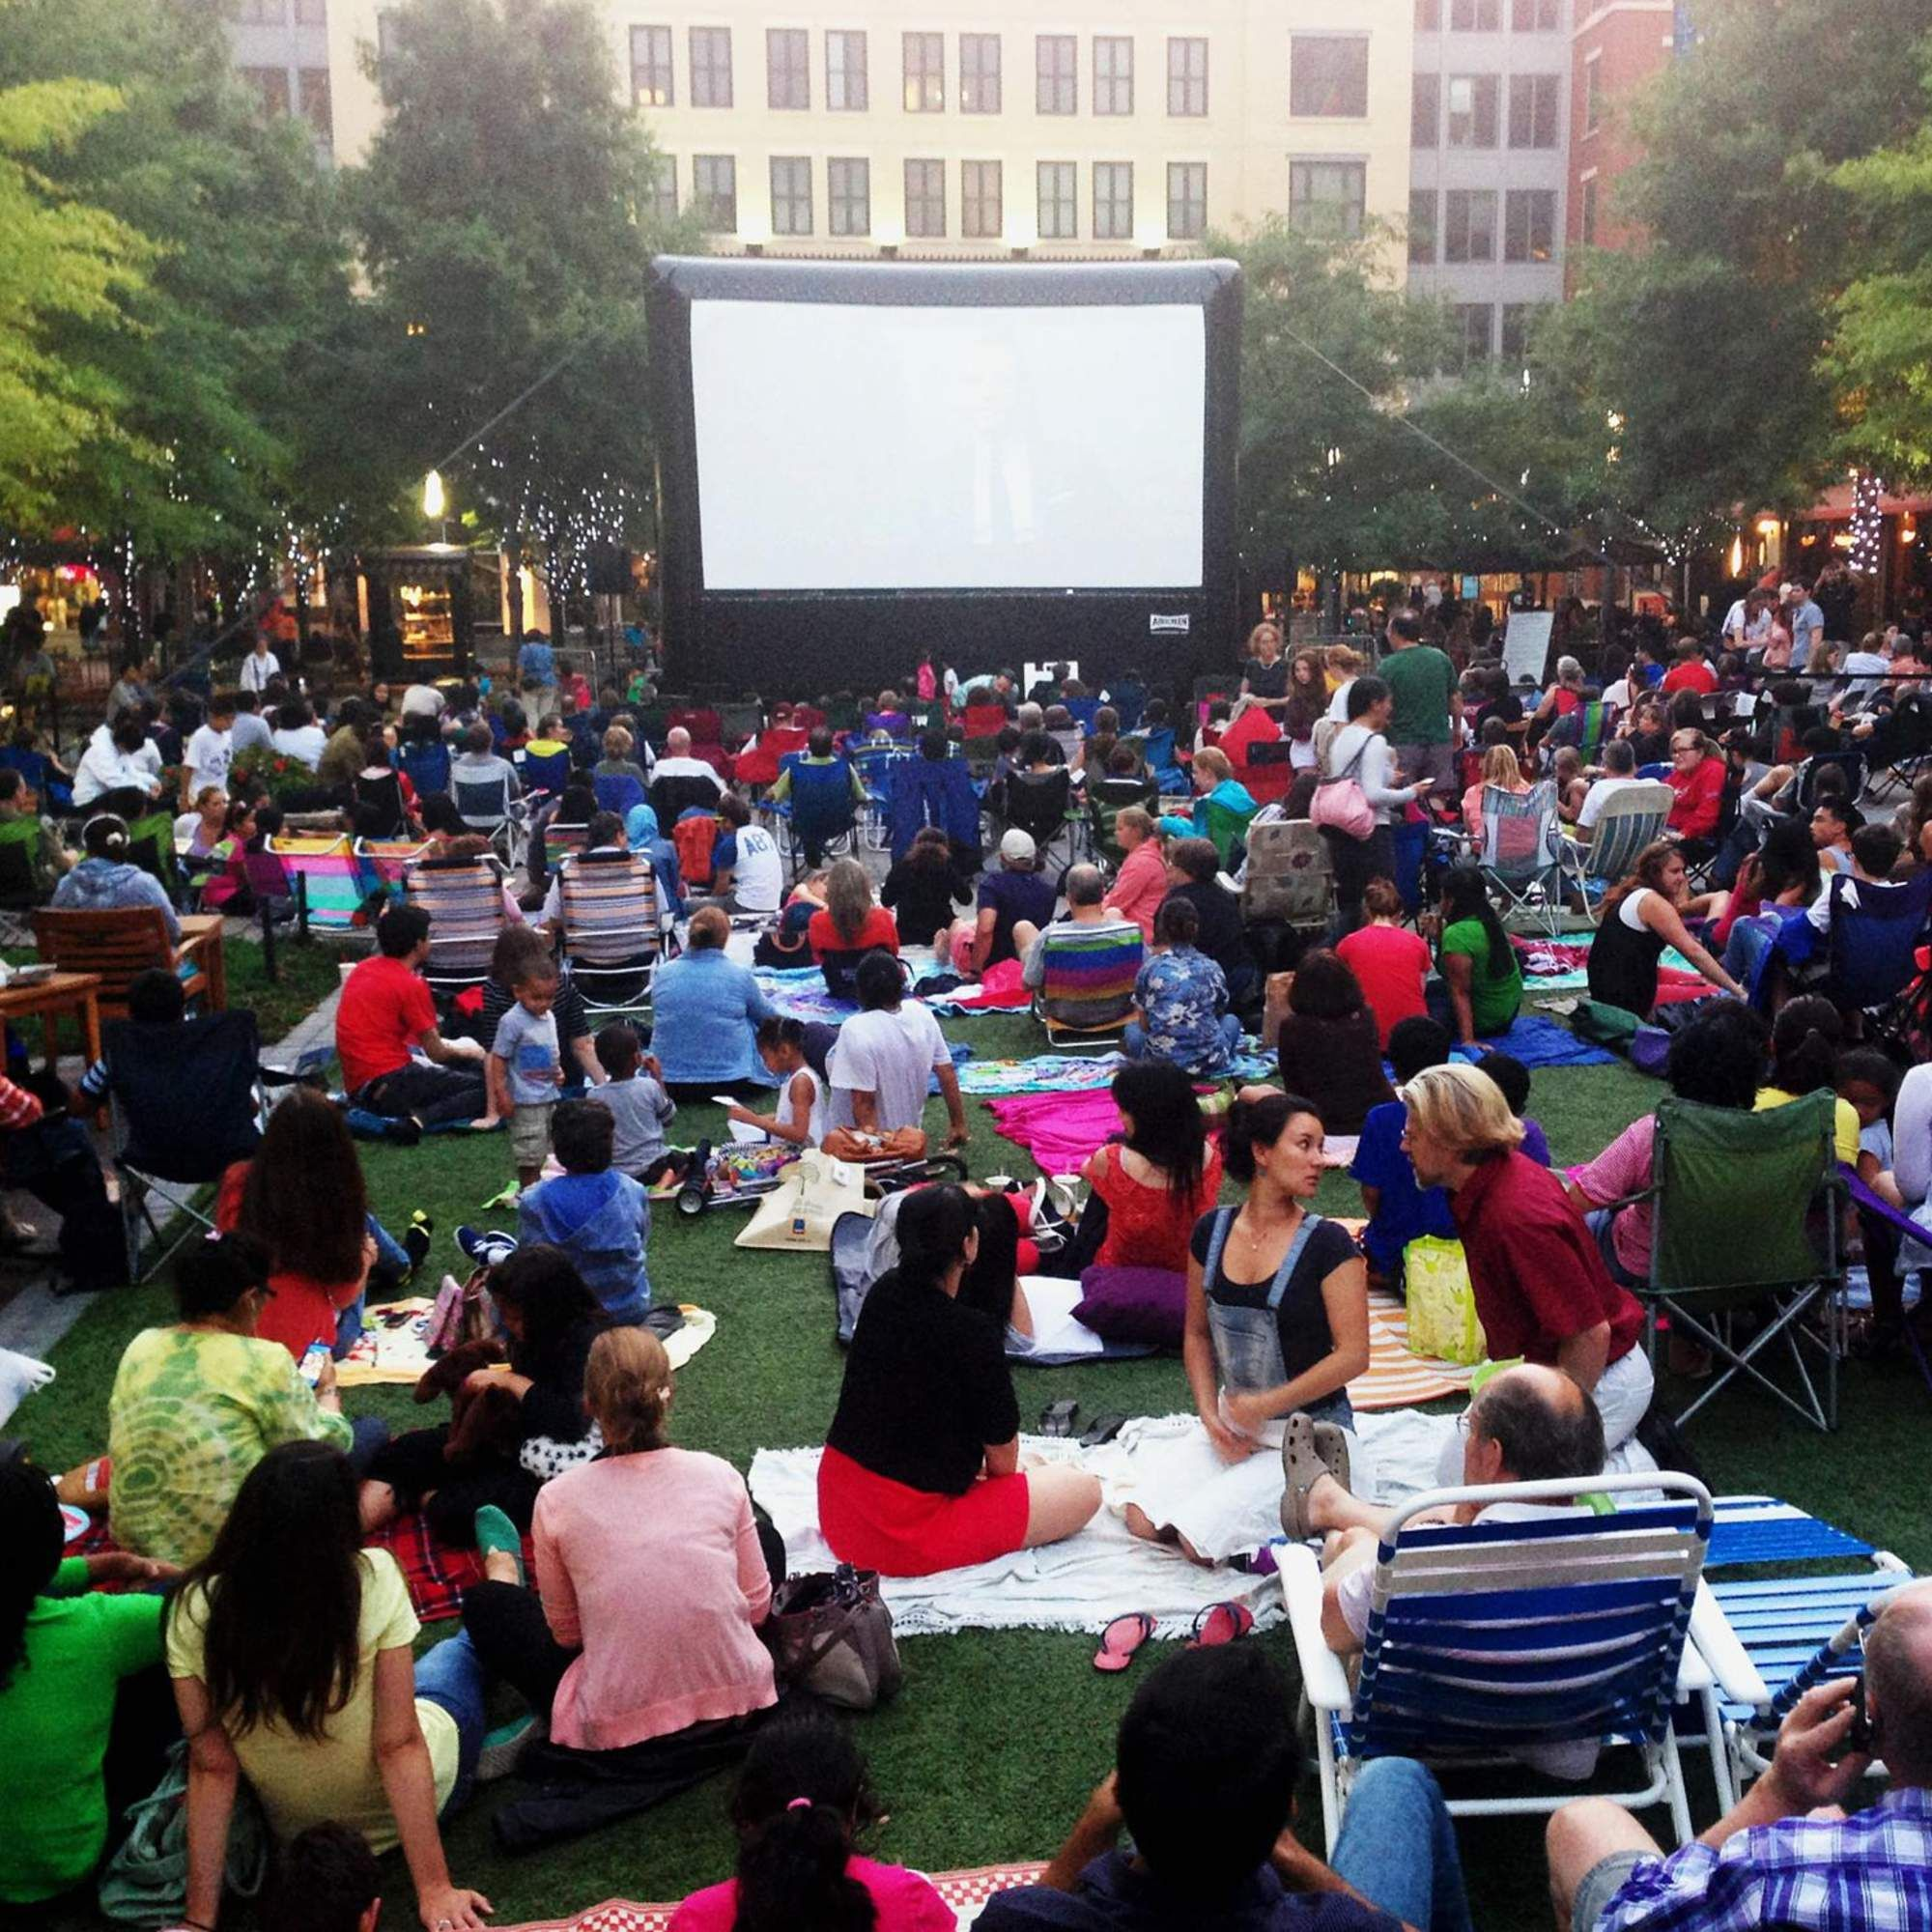 EVERY SUMMER OUTDOOR MOVIE SCREENING IN DC, NOW IN ONE